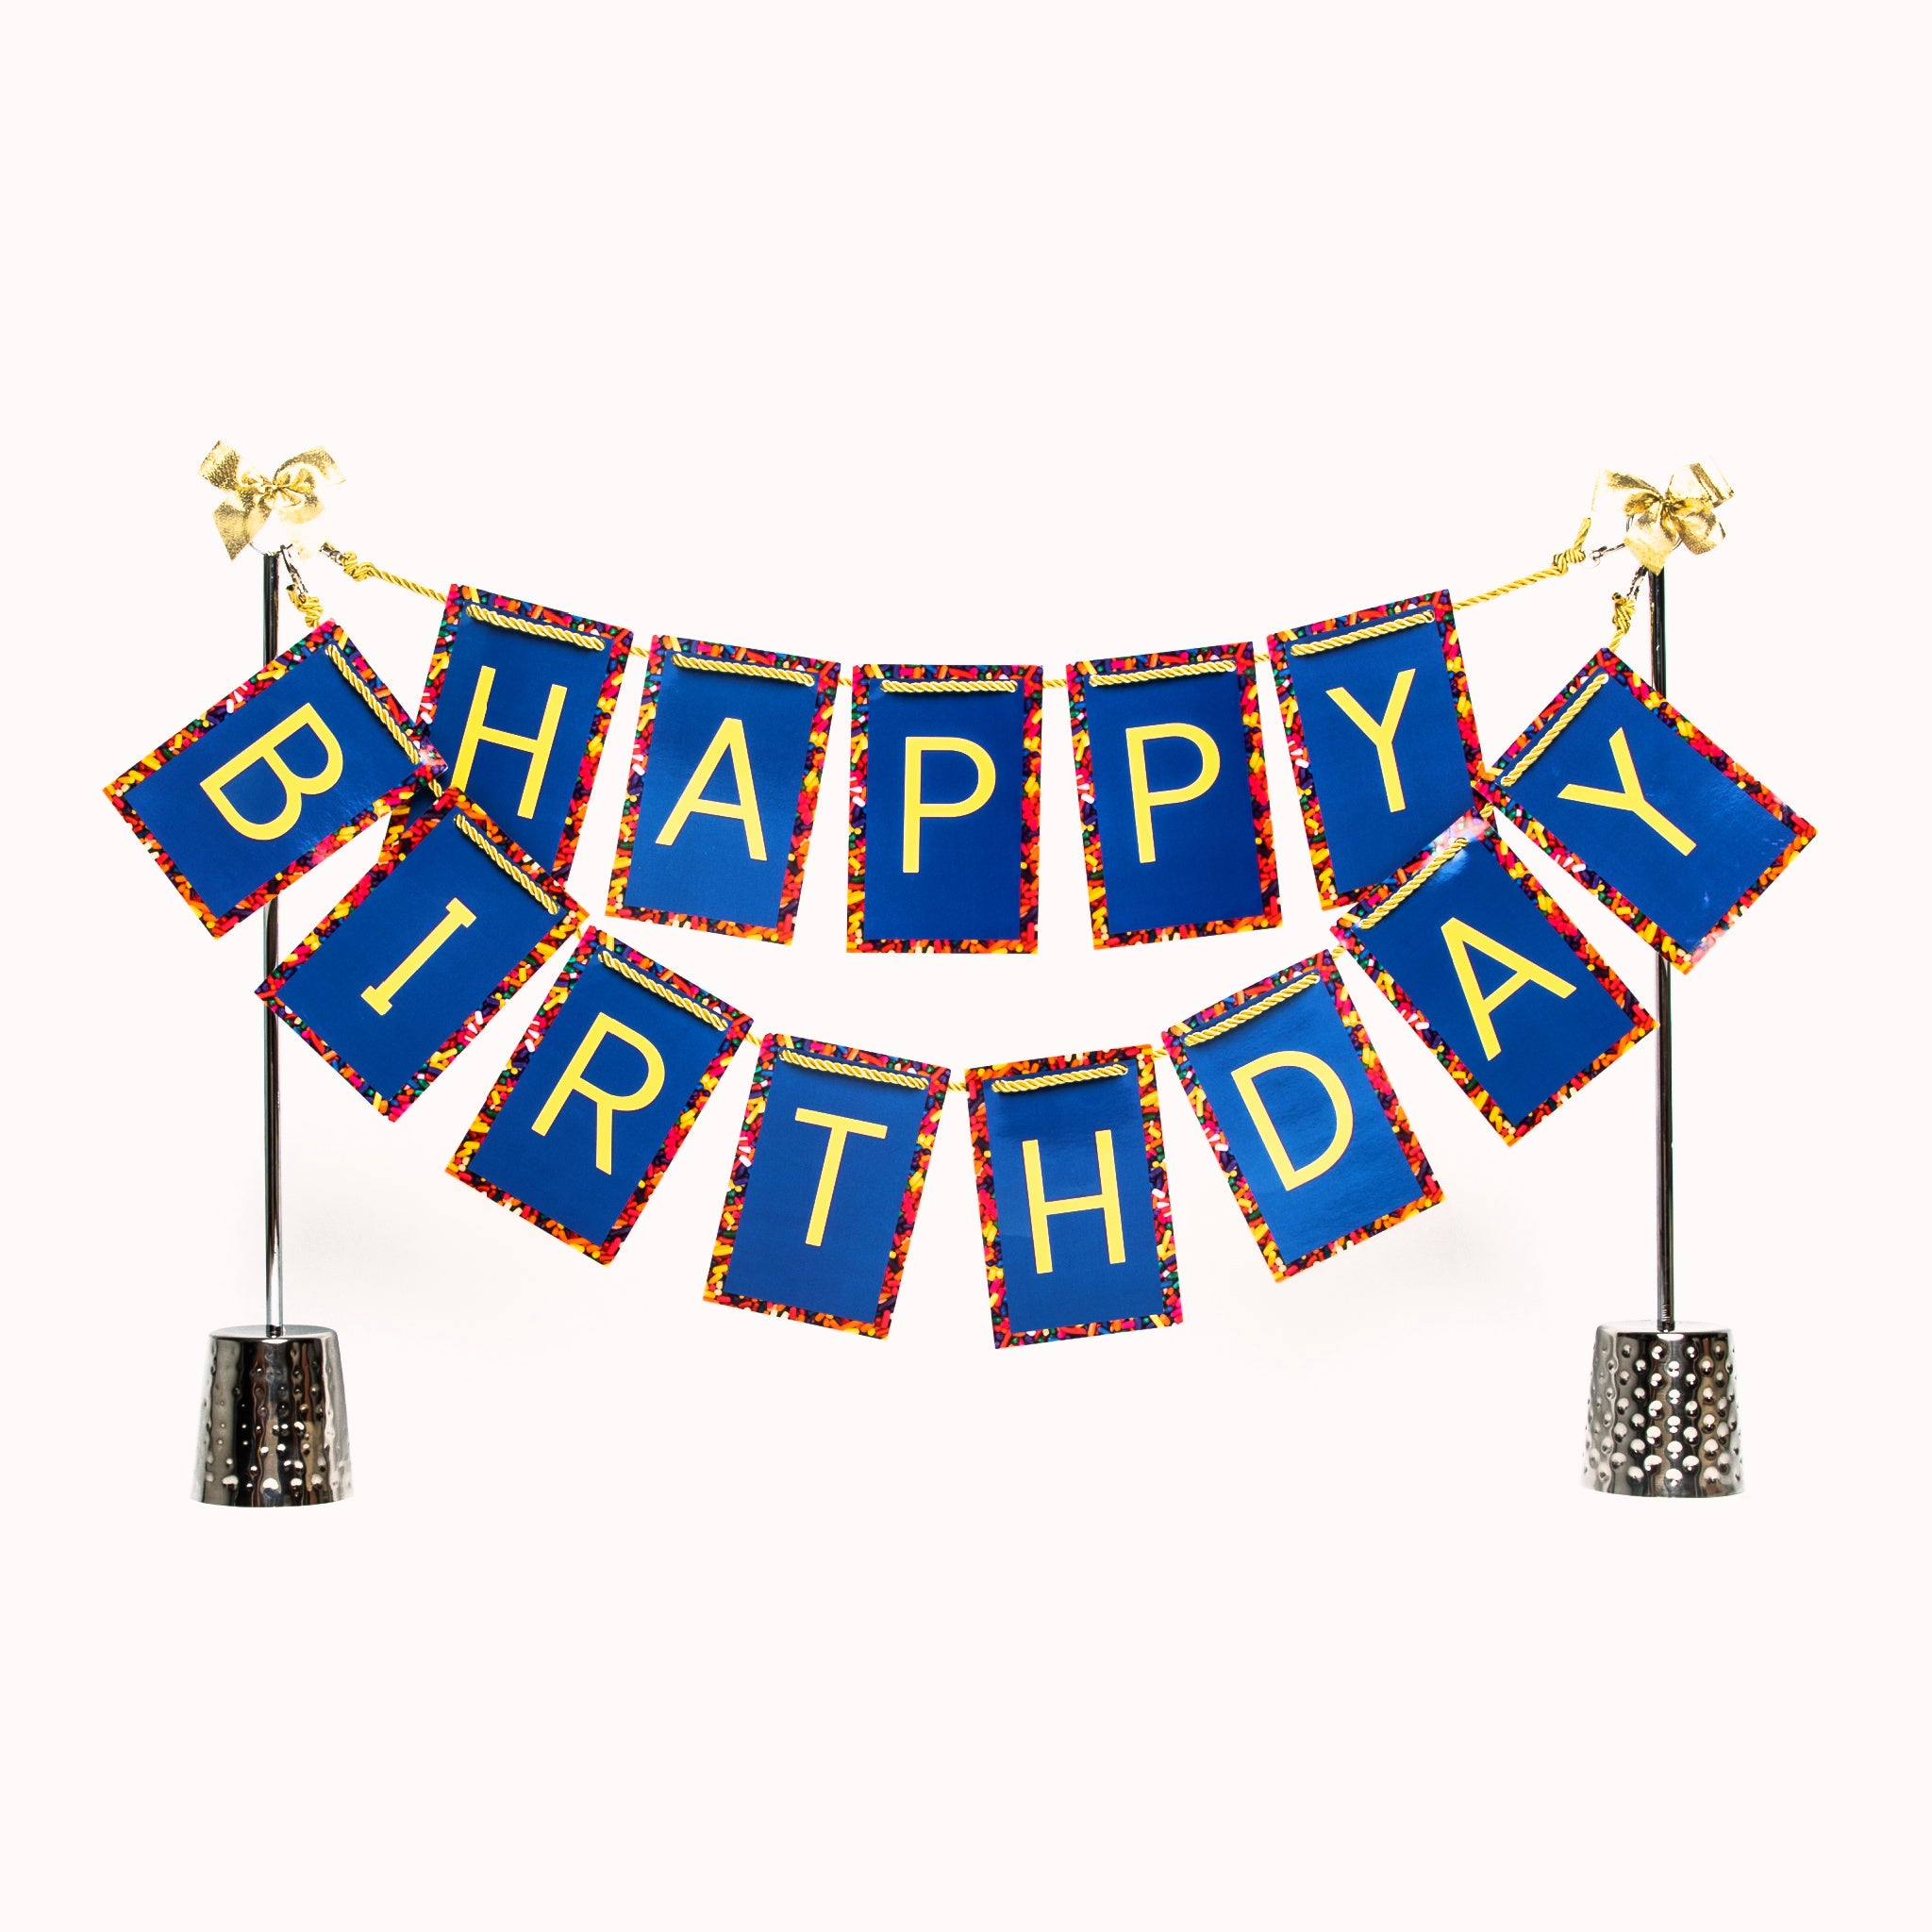 Happy Birthday banner and Celebration Stand